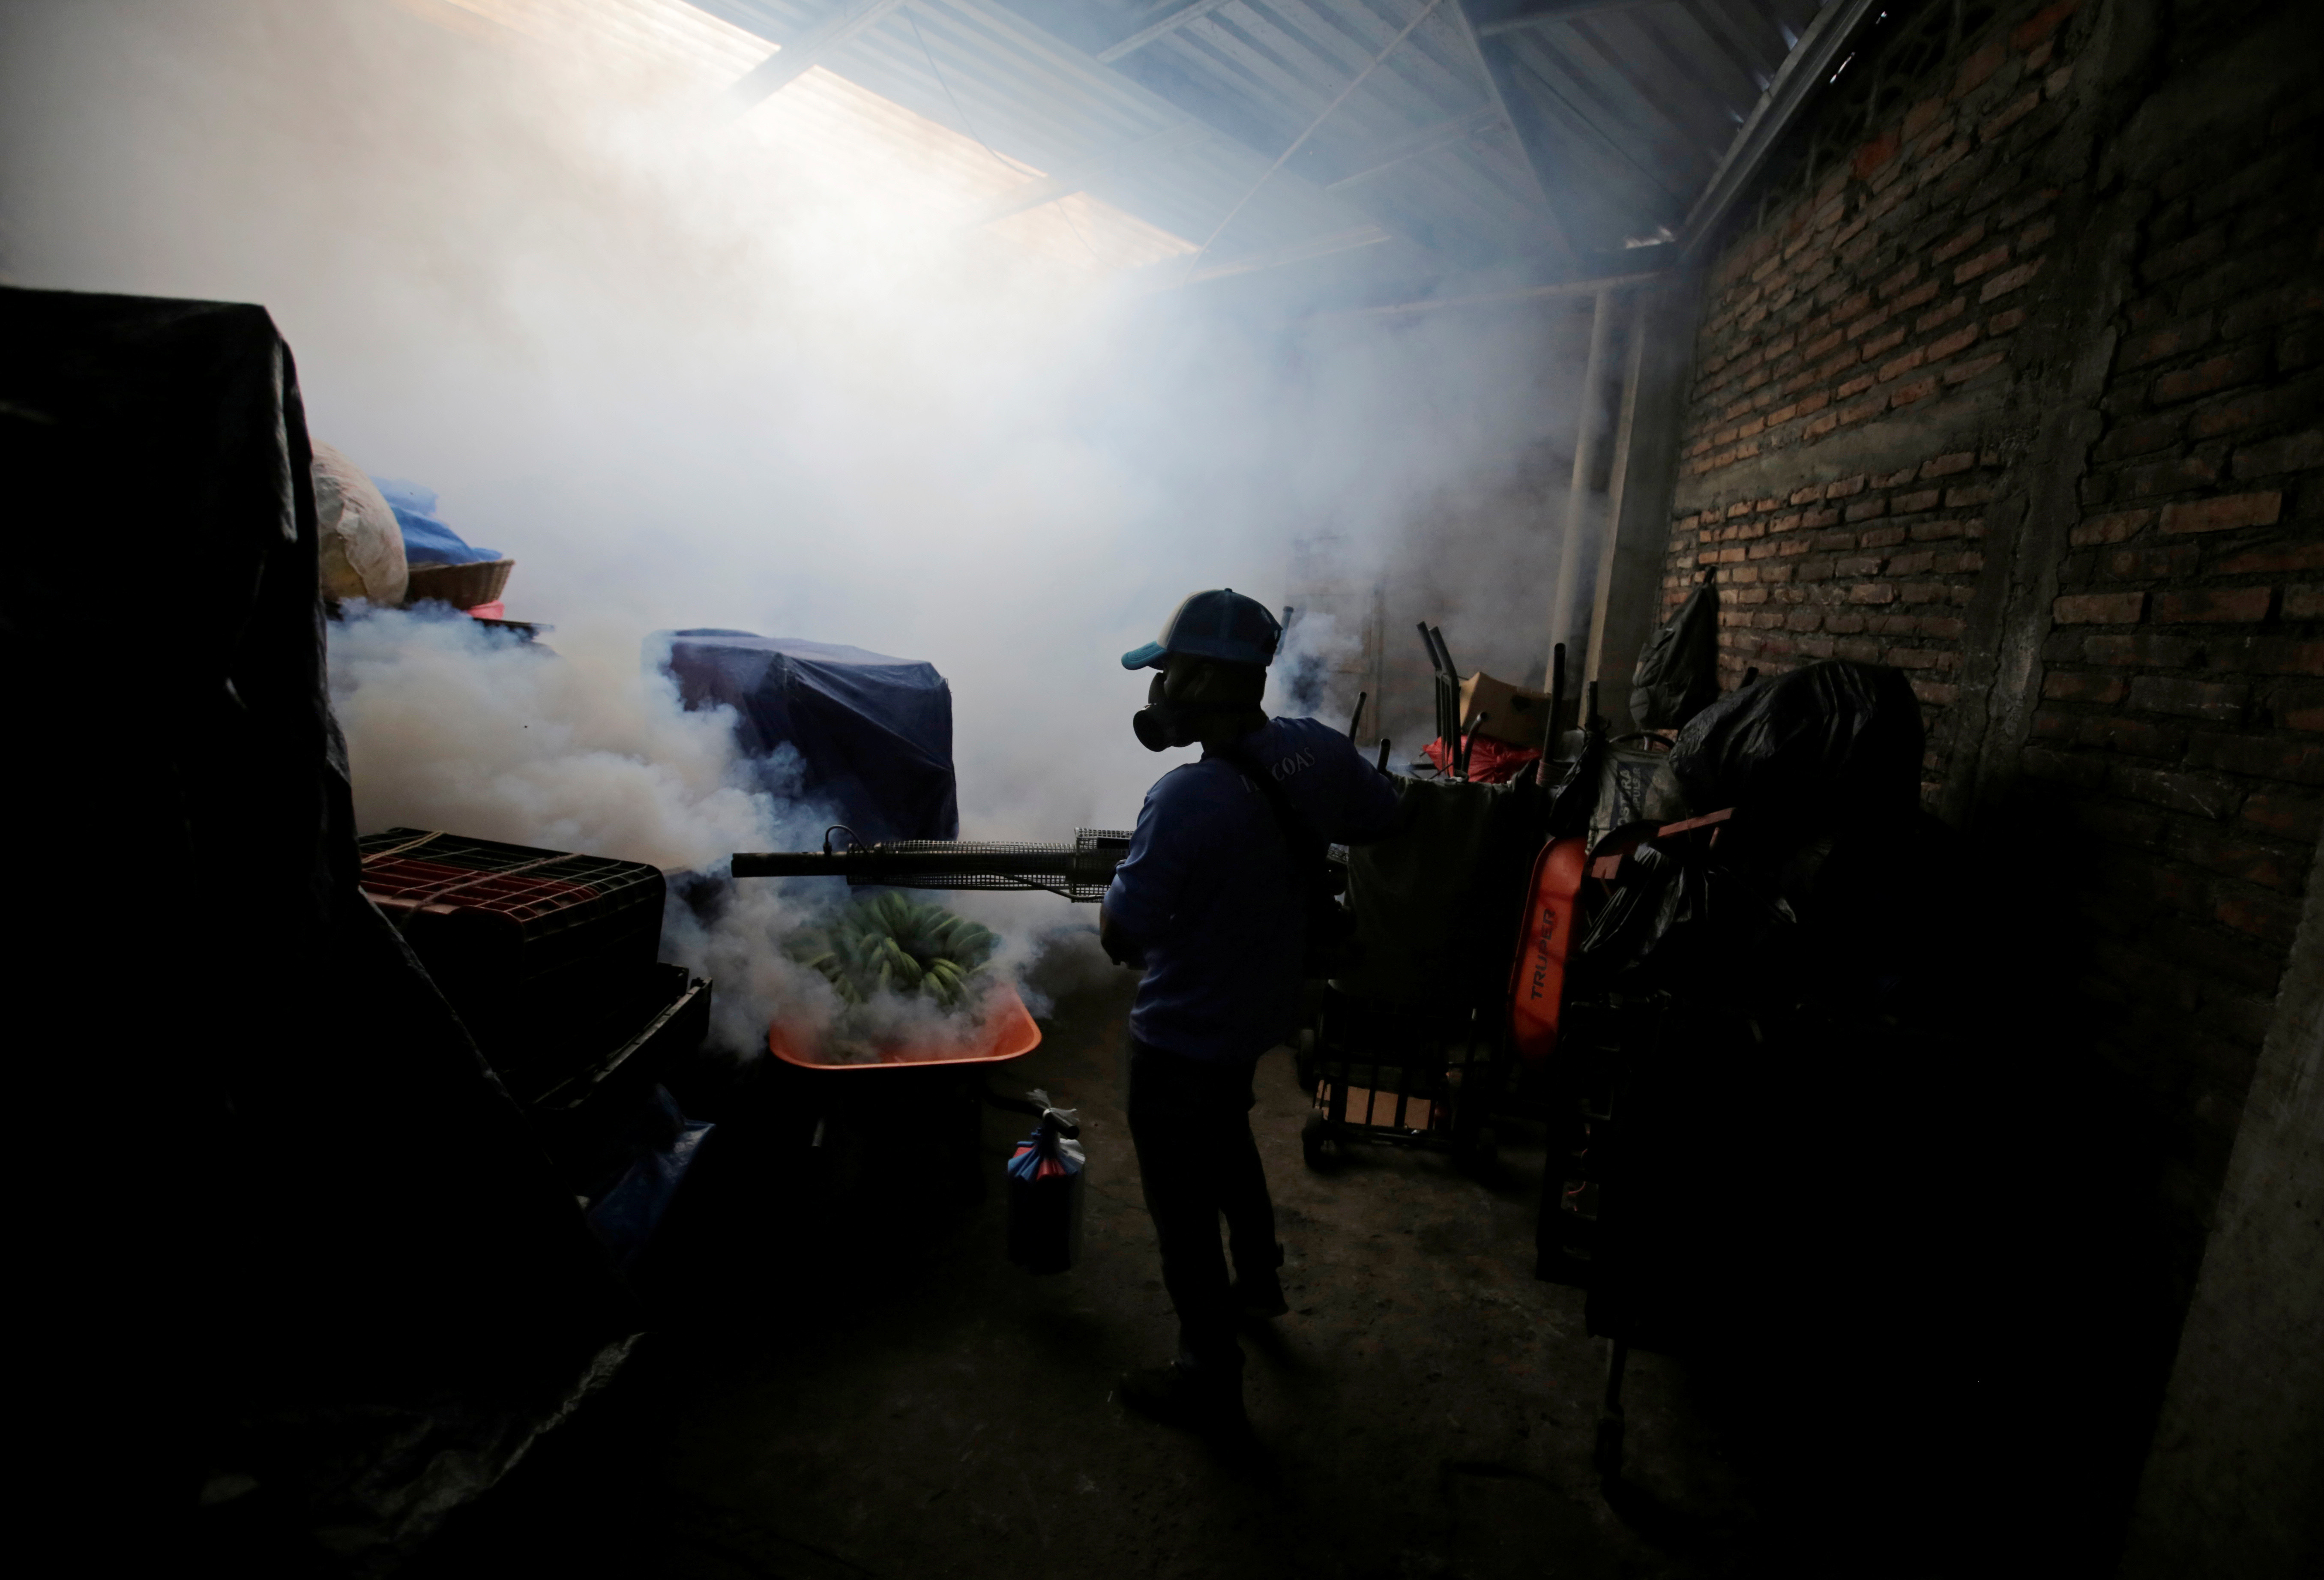 A municipal worker fumigates a market to prevent the spread of dengue fever and other mosquito-borne diseases in Tegucigalpa, Honduras, July 25, 2019. REUTERS/Jorge Cabrera - RC1AA47E74E0